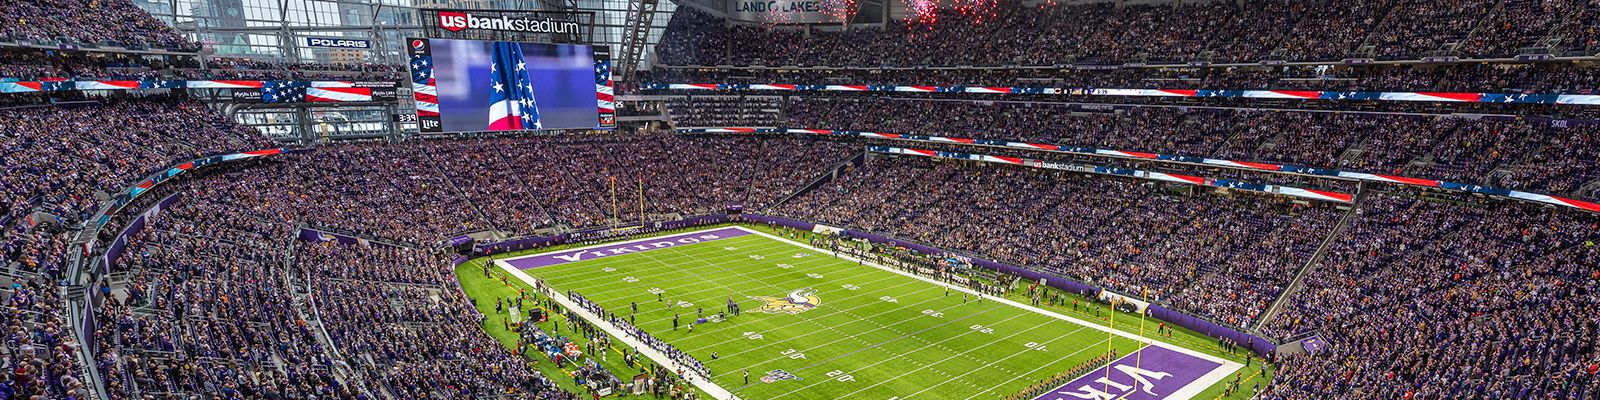 Download Minnesota Vikings background for you to use for video conferencing. Click the links below to download the files.